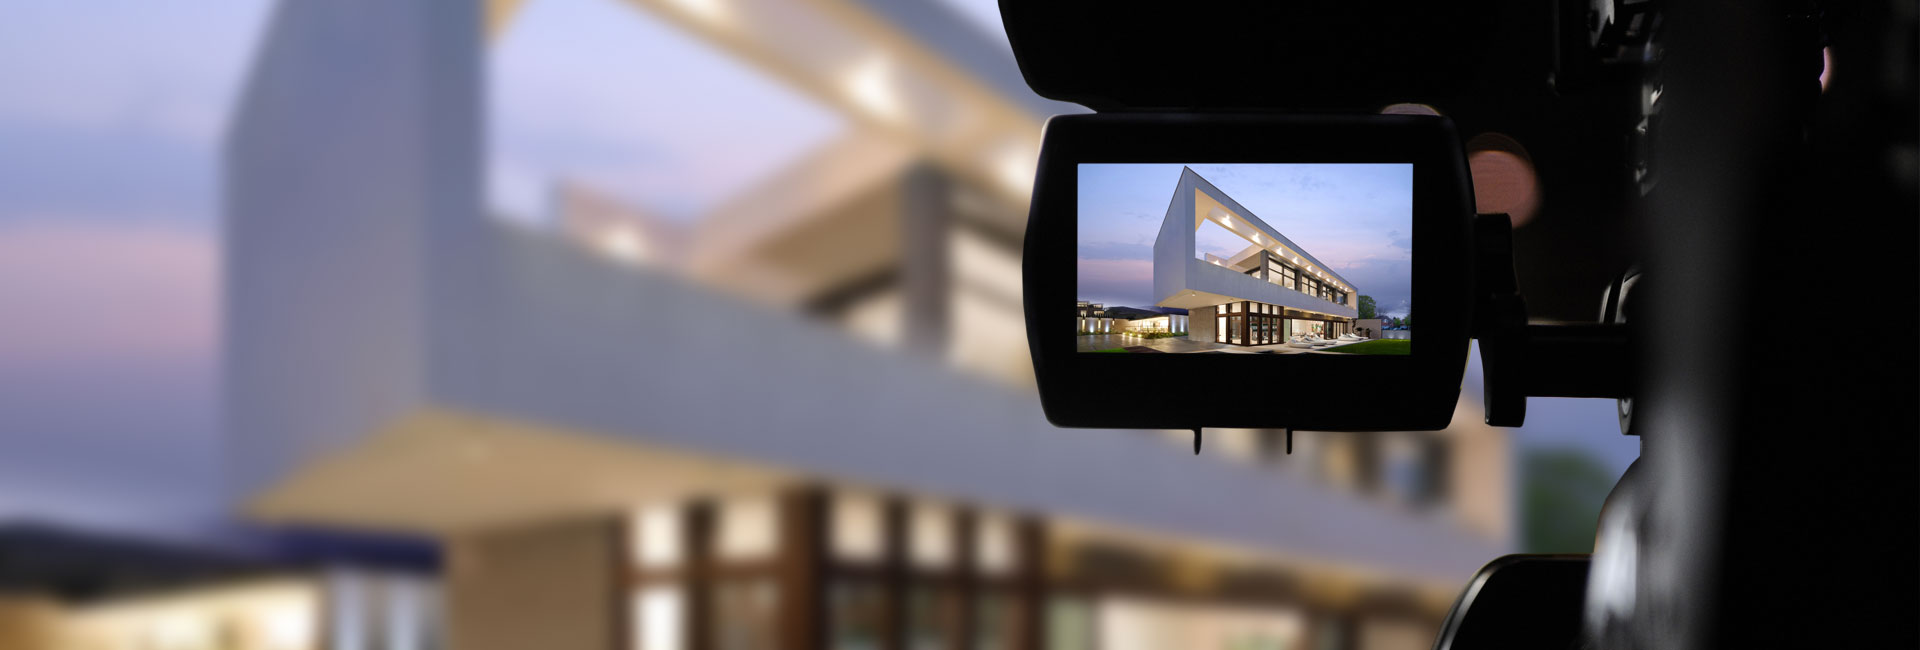 Wolf Architects Video Gallery Slider Image